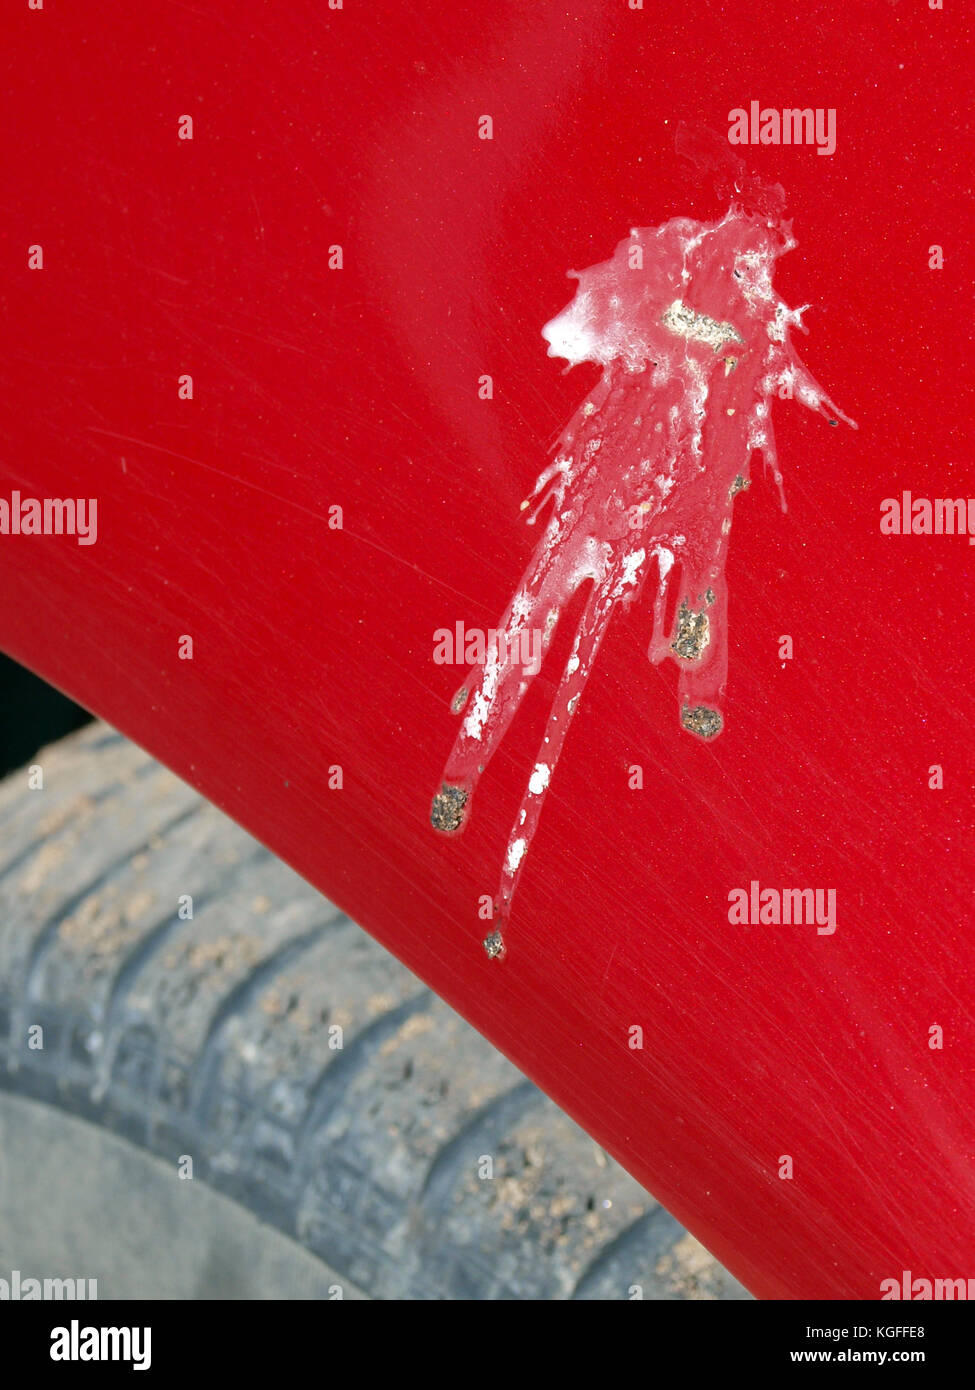 Bird droppings splash on red car body surface - Stock Image